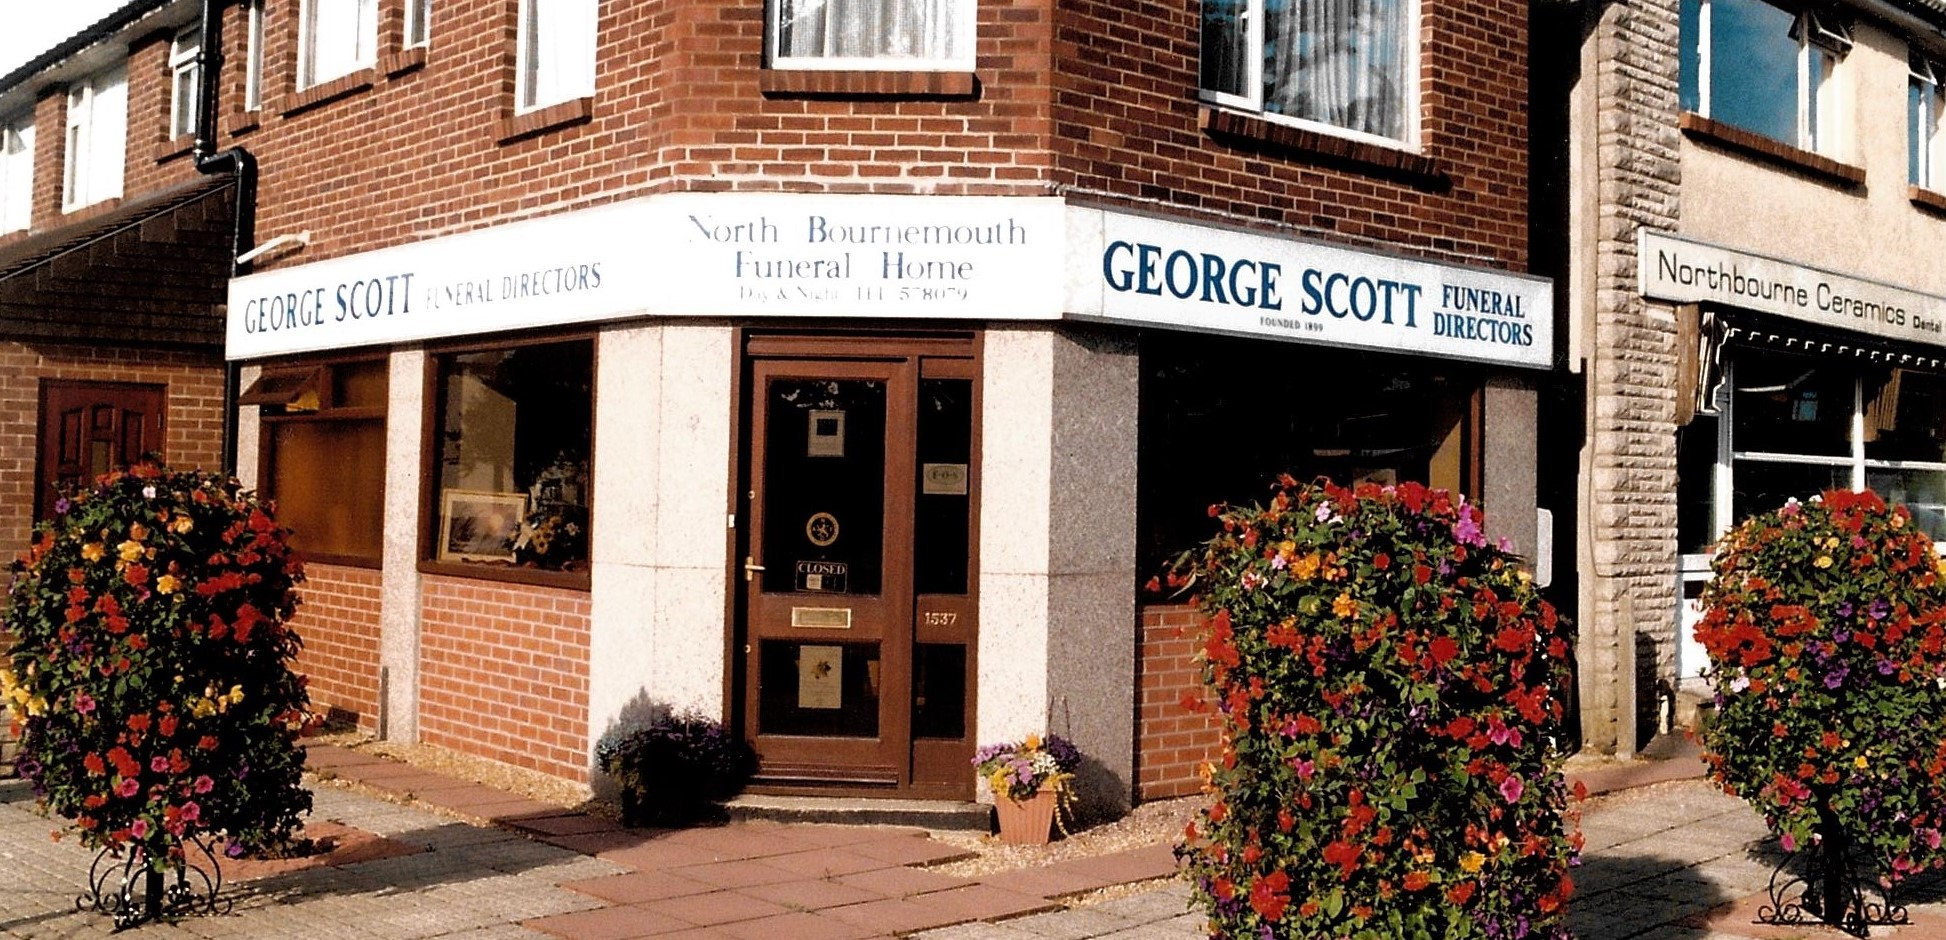 George Scott Funeral Directors home in Kinson